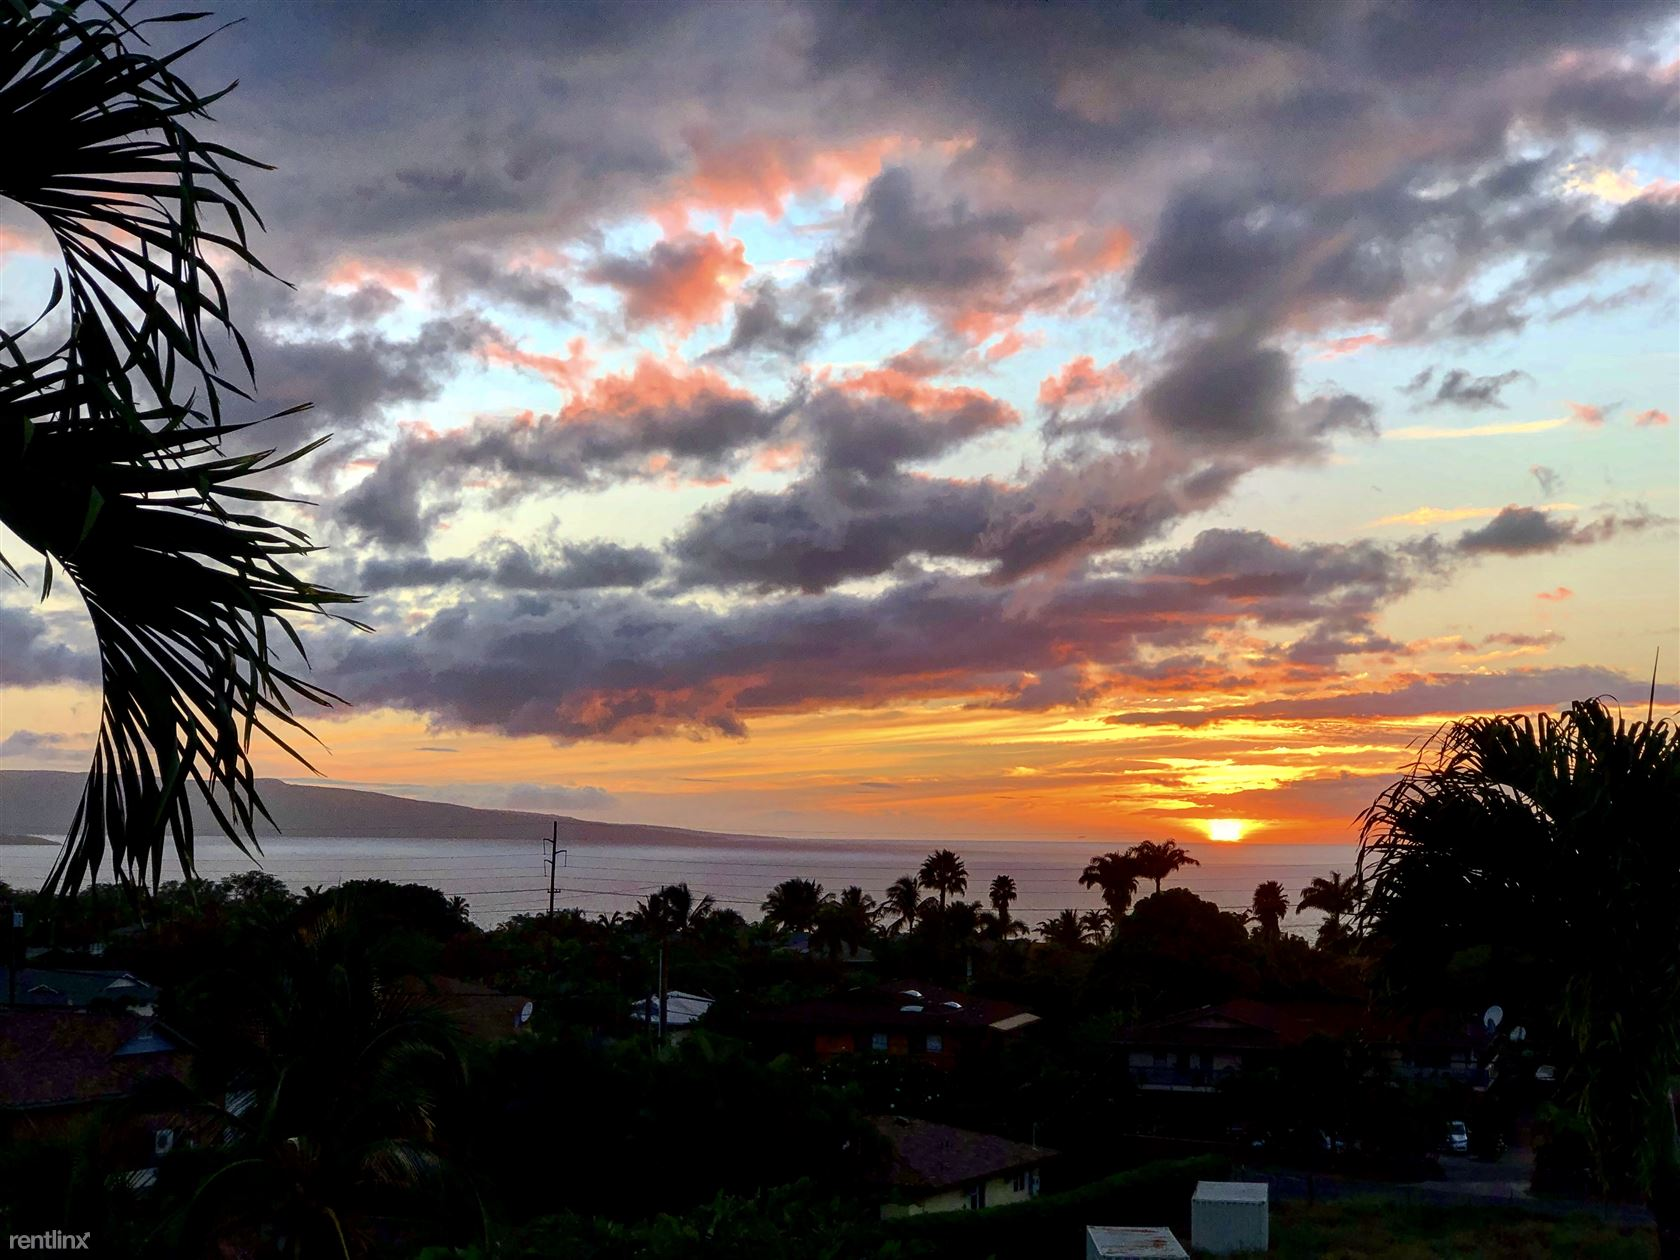 House for Rent in Wailea